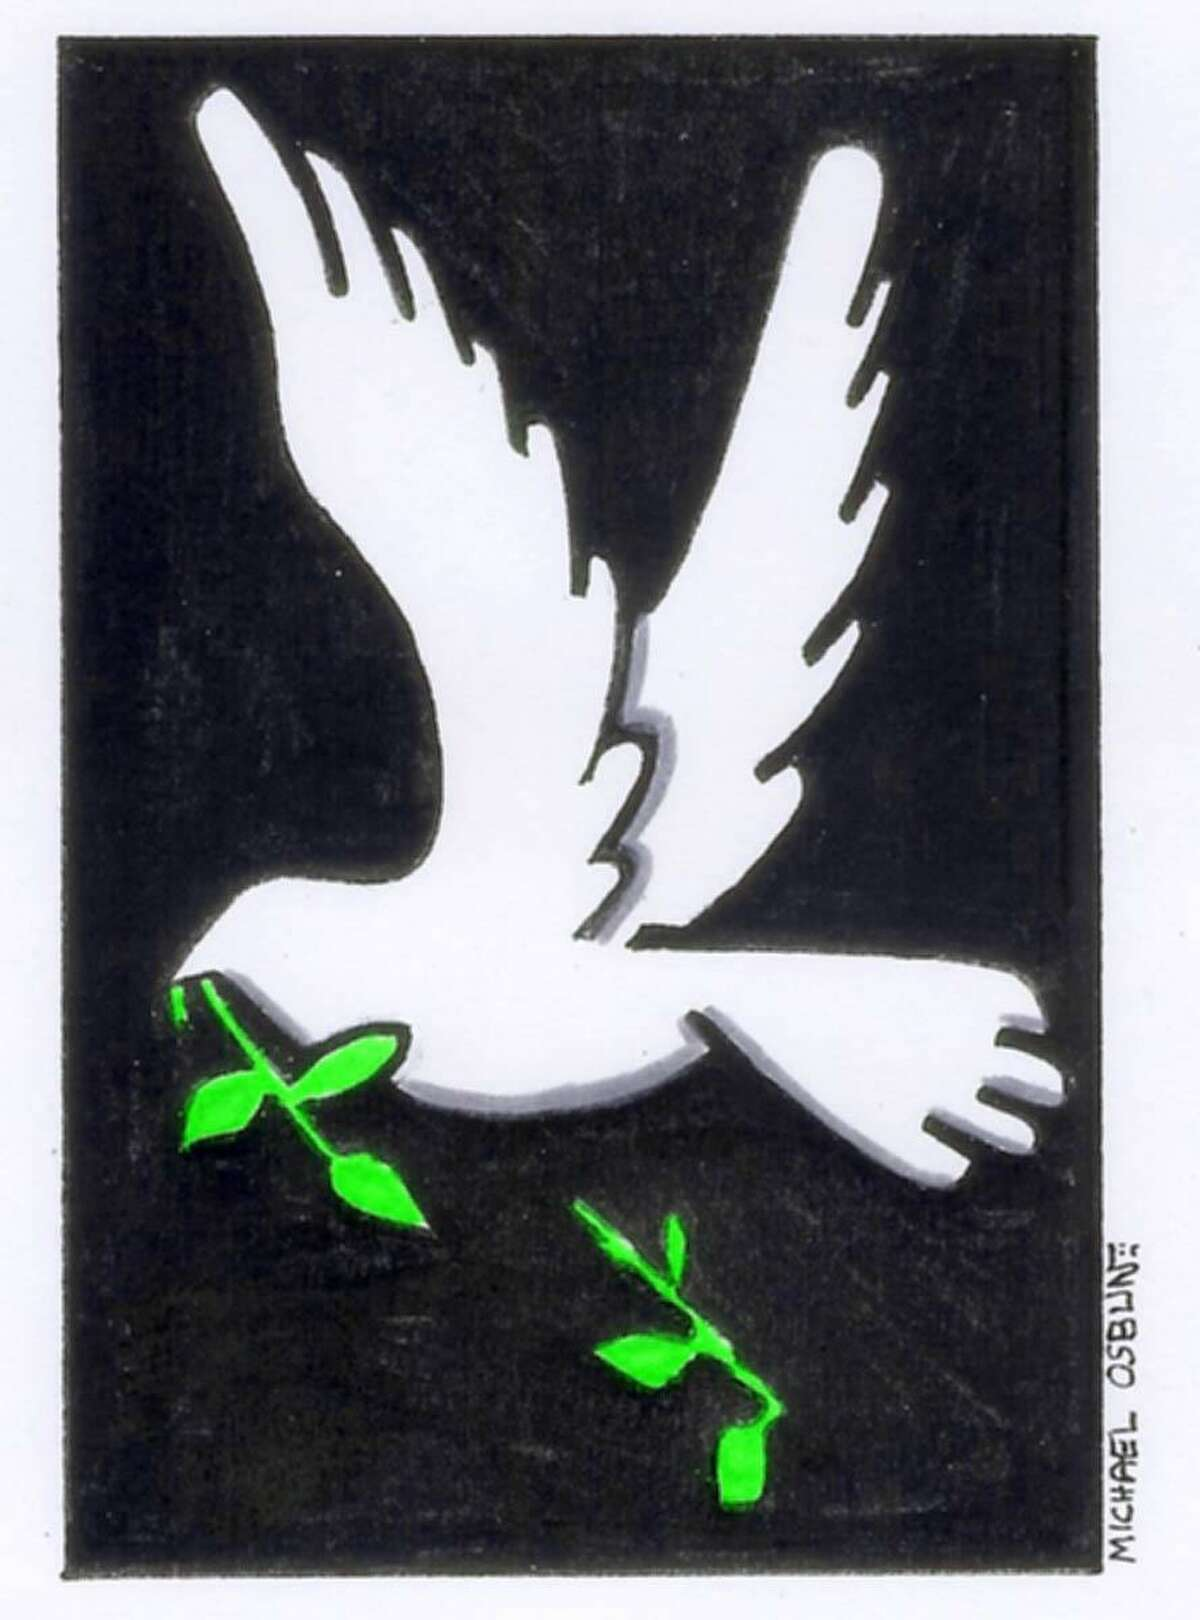 This artwork by Michael Osbun relates to broken hopes for peace in the Middle East.